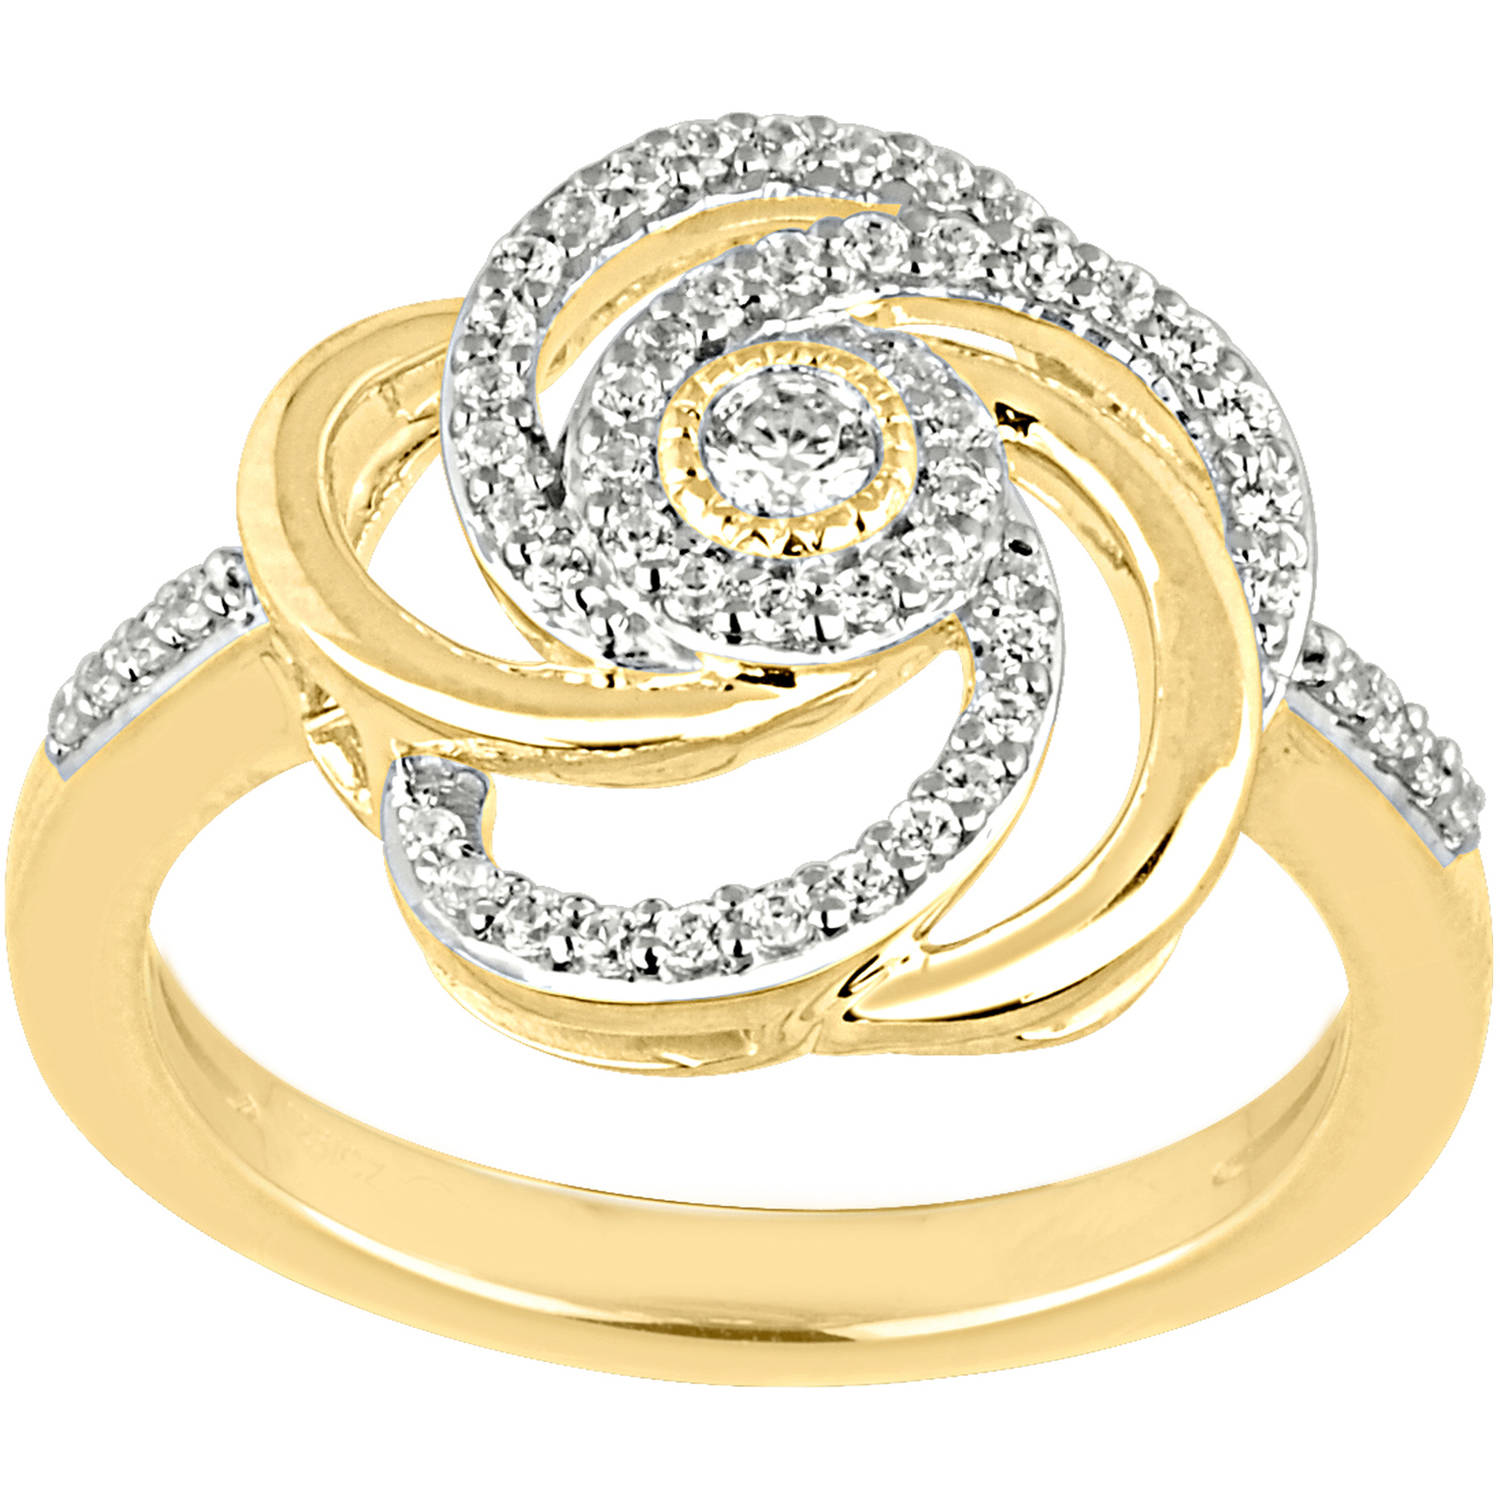 1/3 Carat T.W. Diamond 10kt Yellow Gold Floral Swirl Ring